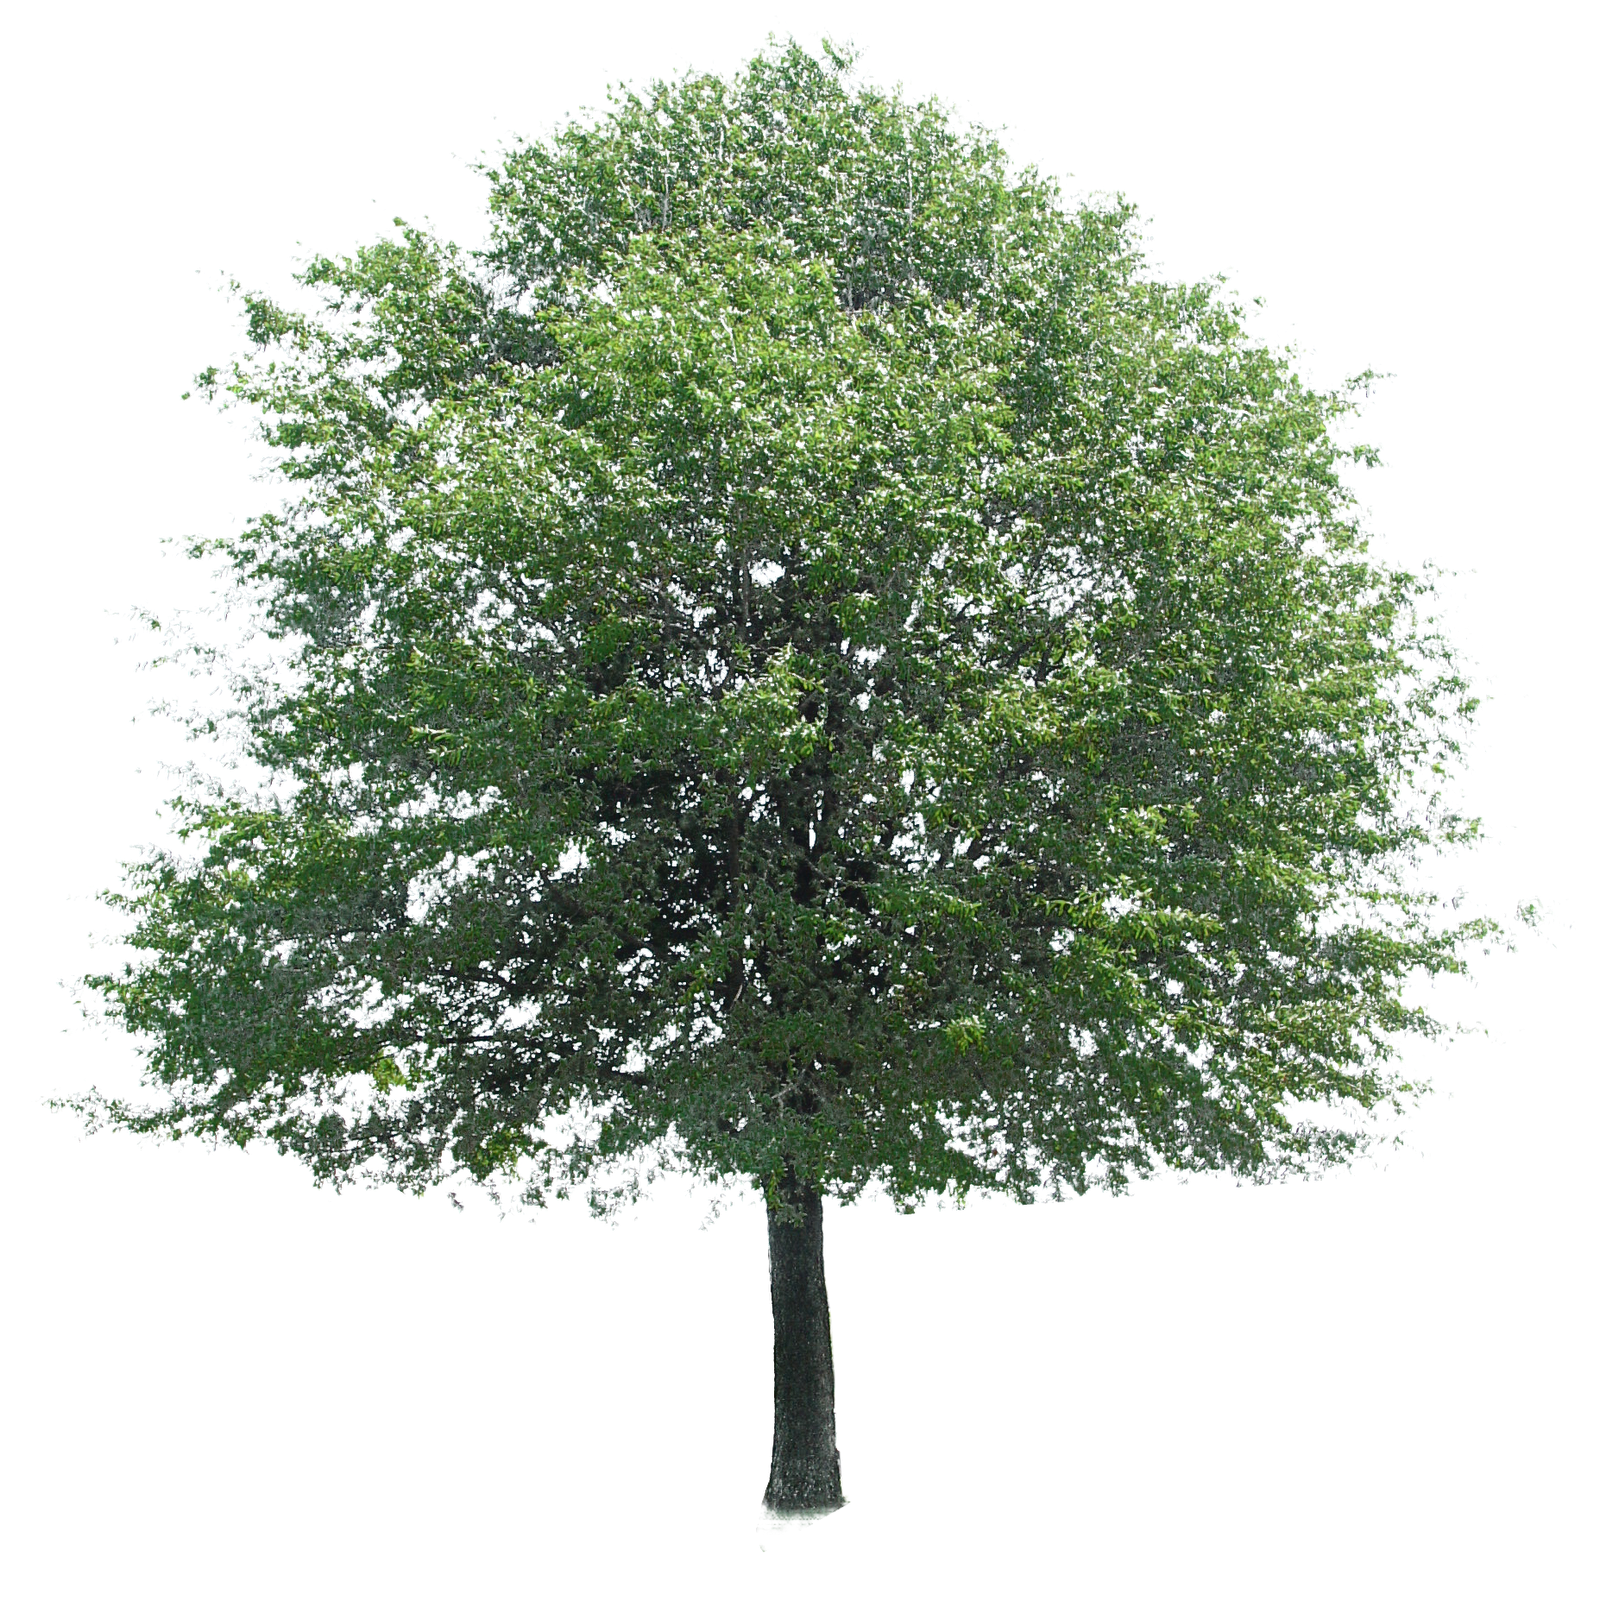 Tree 3D Models for Download | TurboSquid